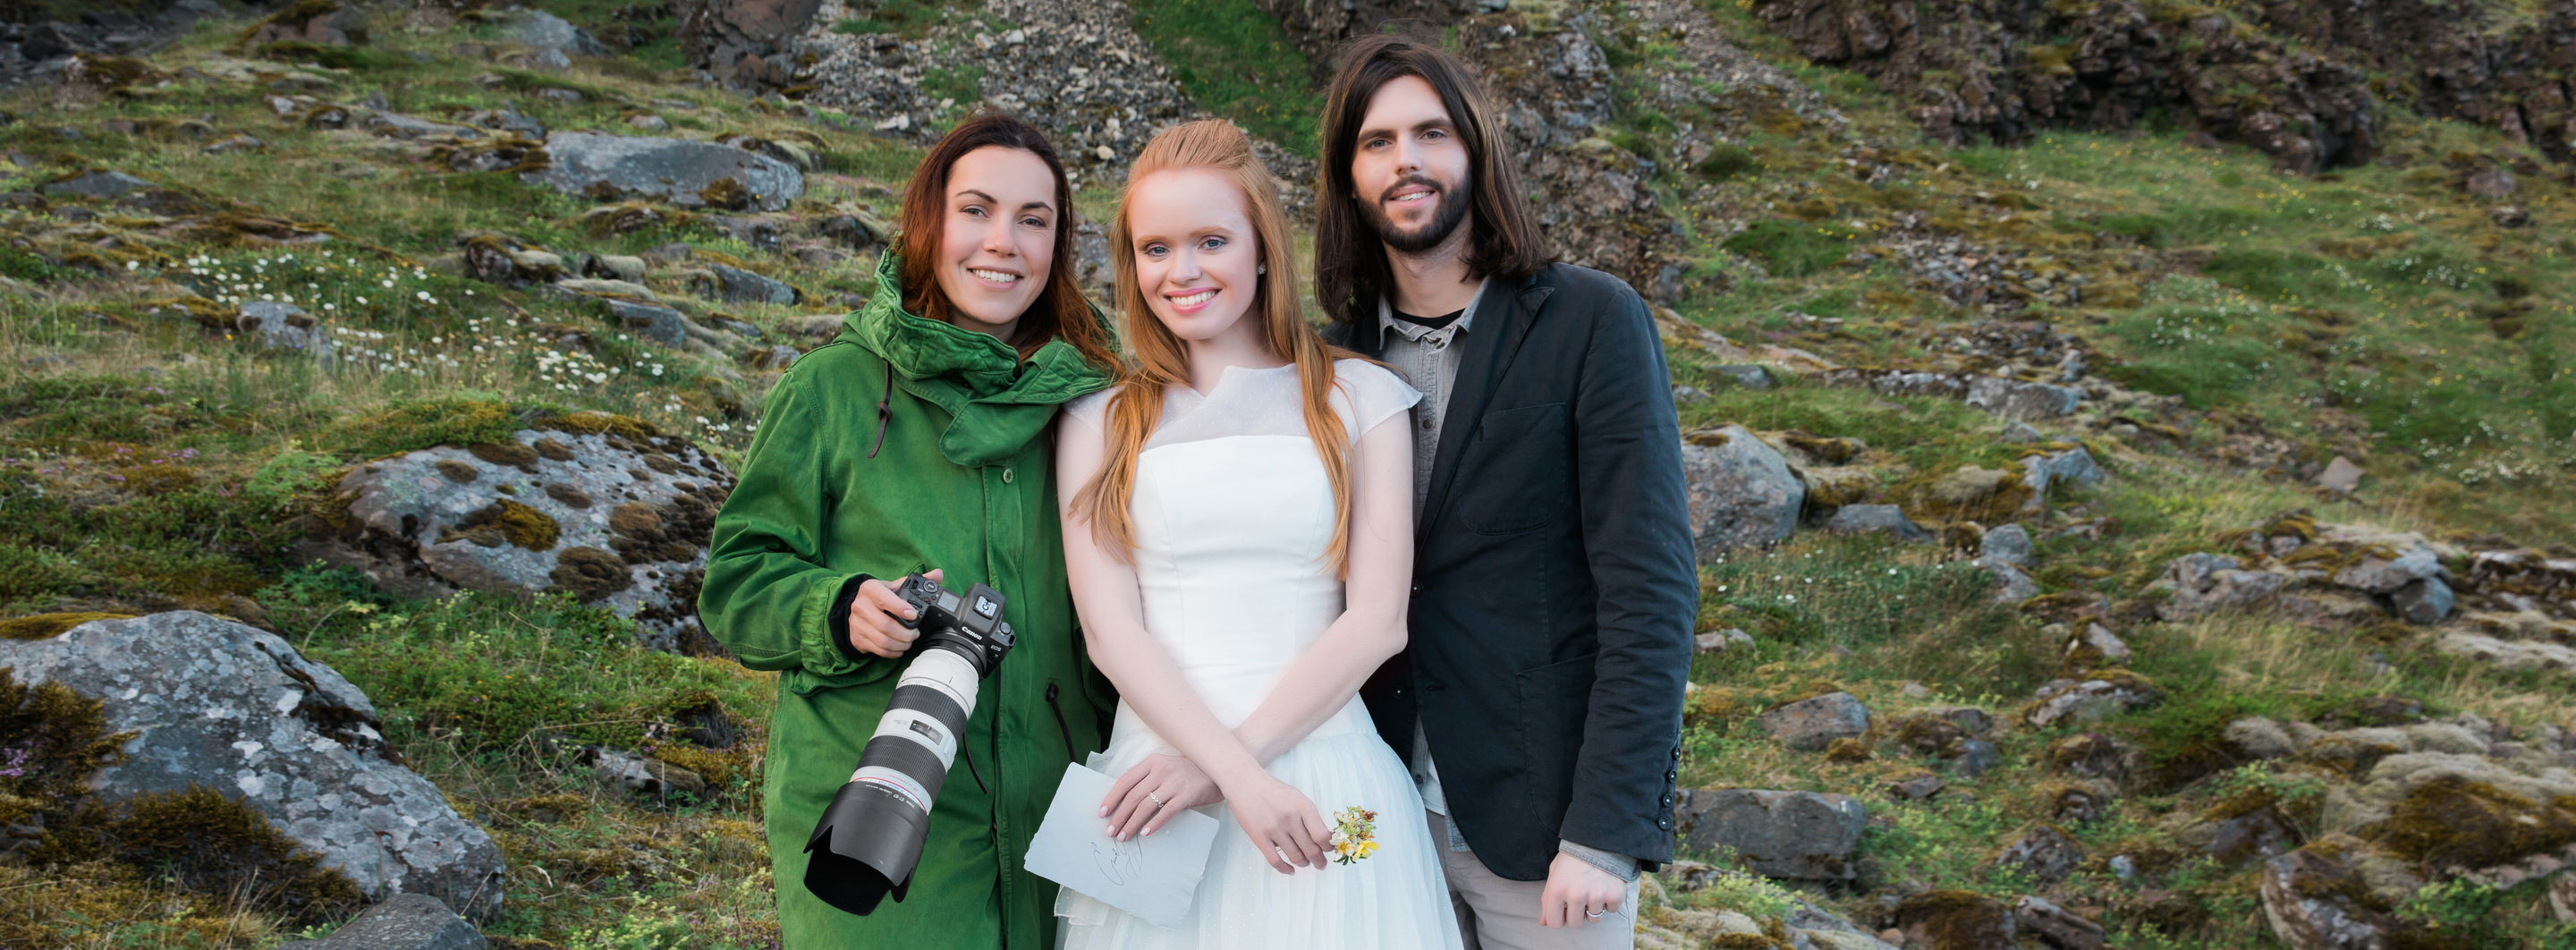 Iceland wedding photographer Katya Mukhina